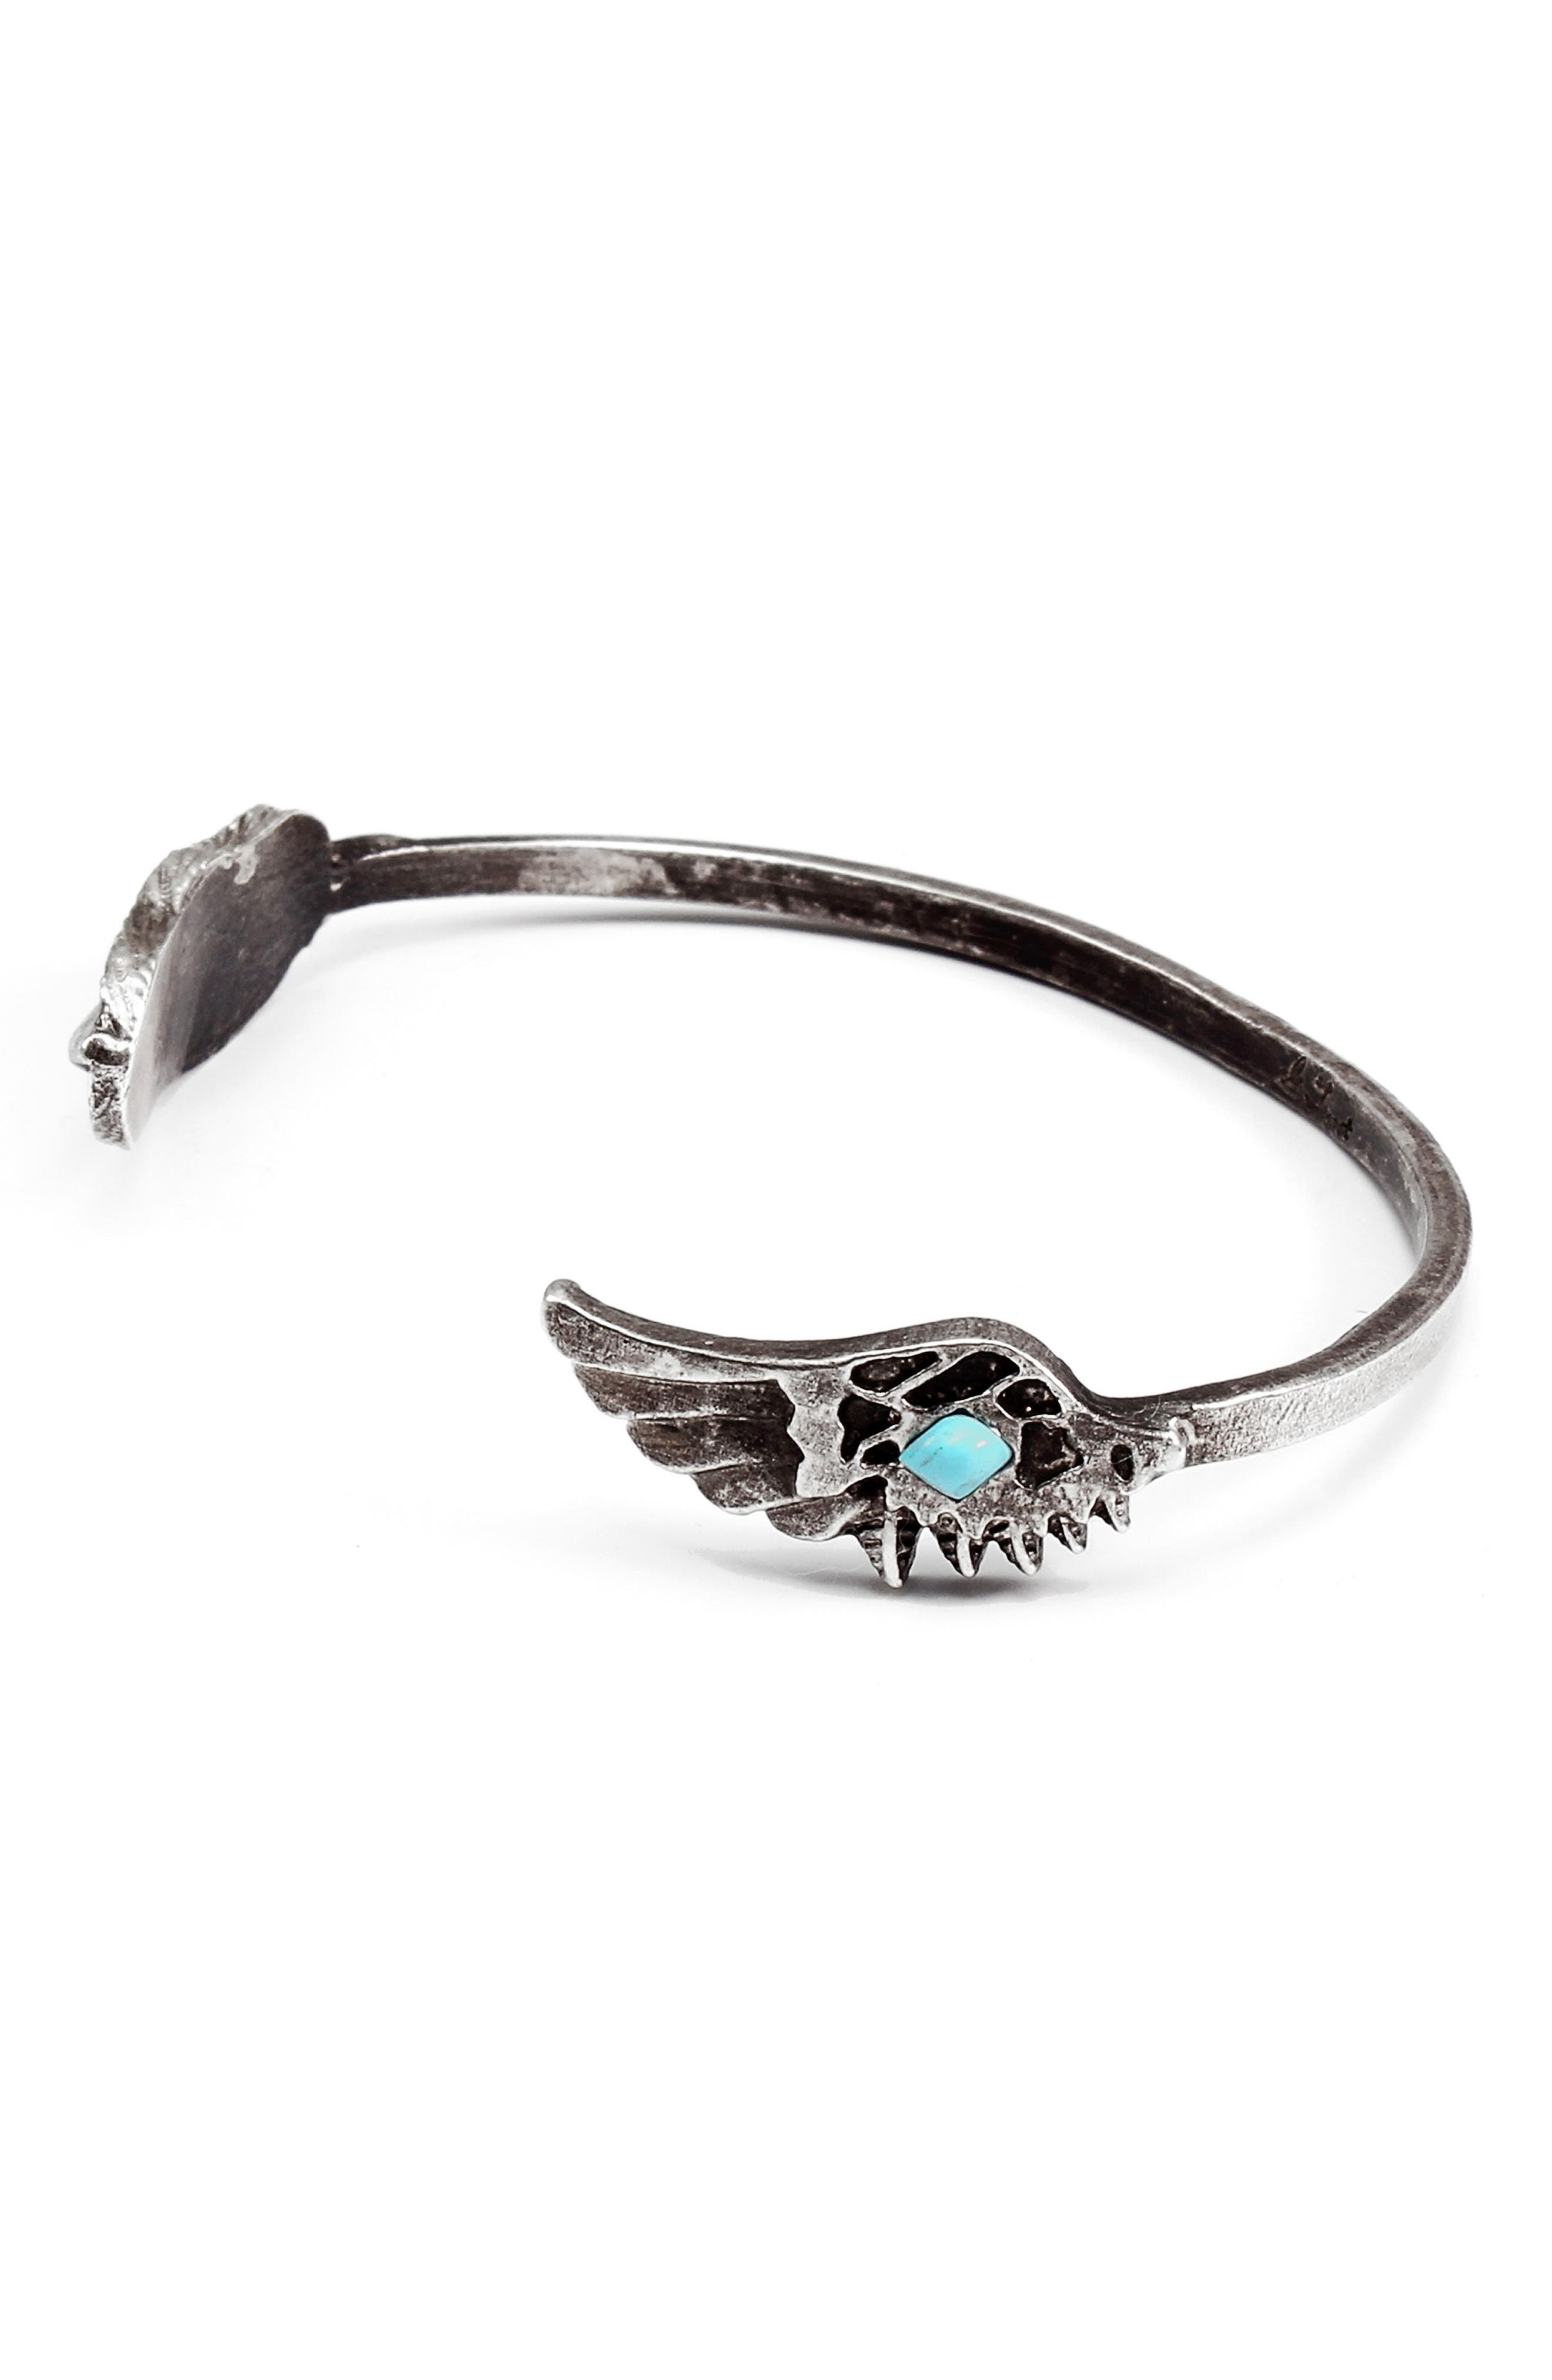 Nomad Cuff Bracelet,                             Alternate thumbnail 2, color,                             Silver / Turquoise